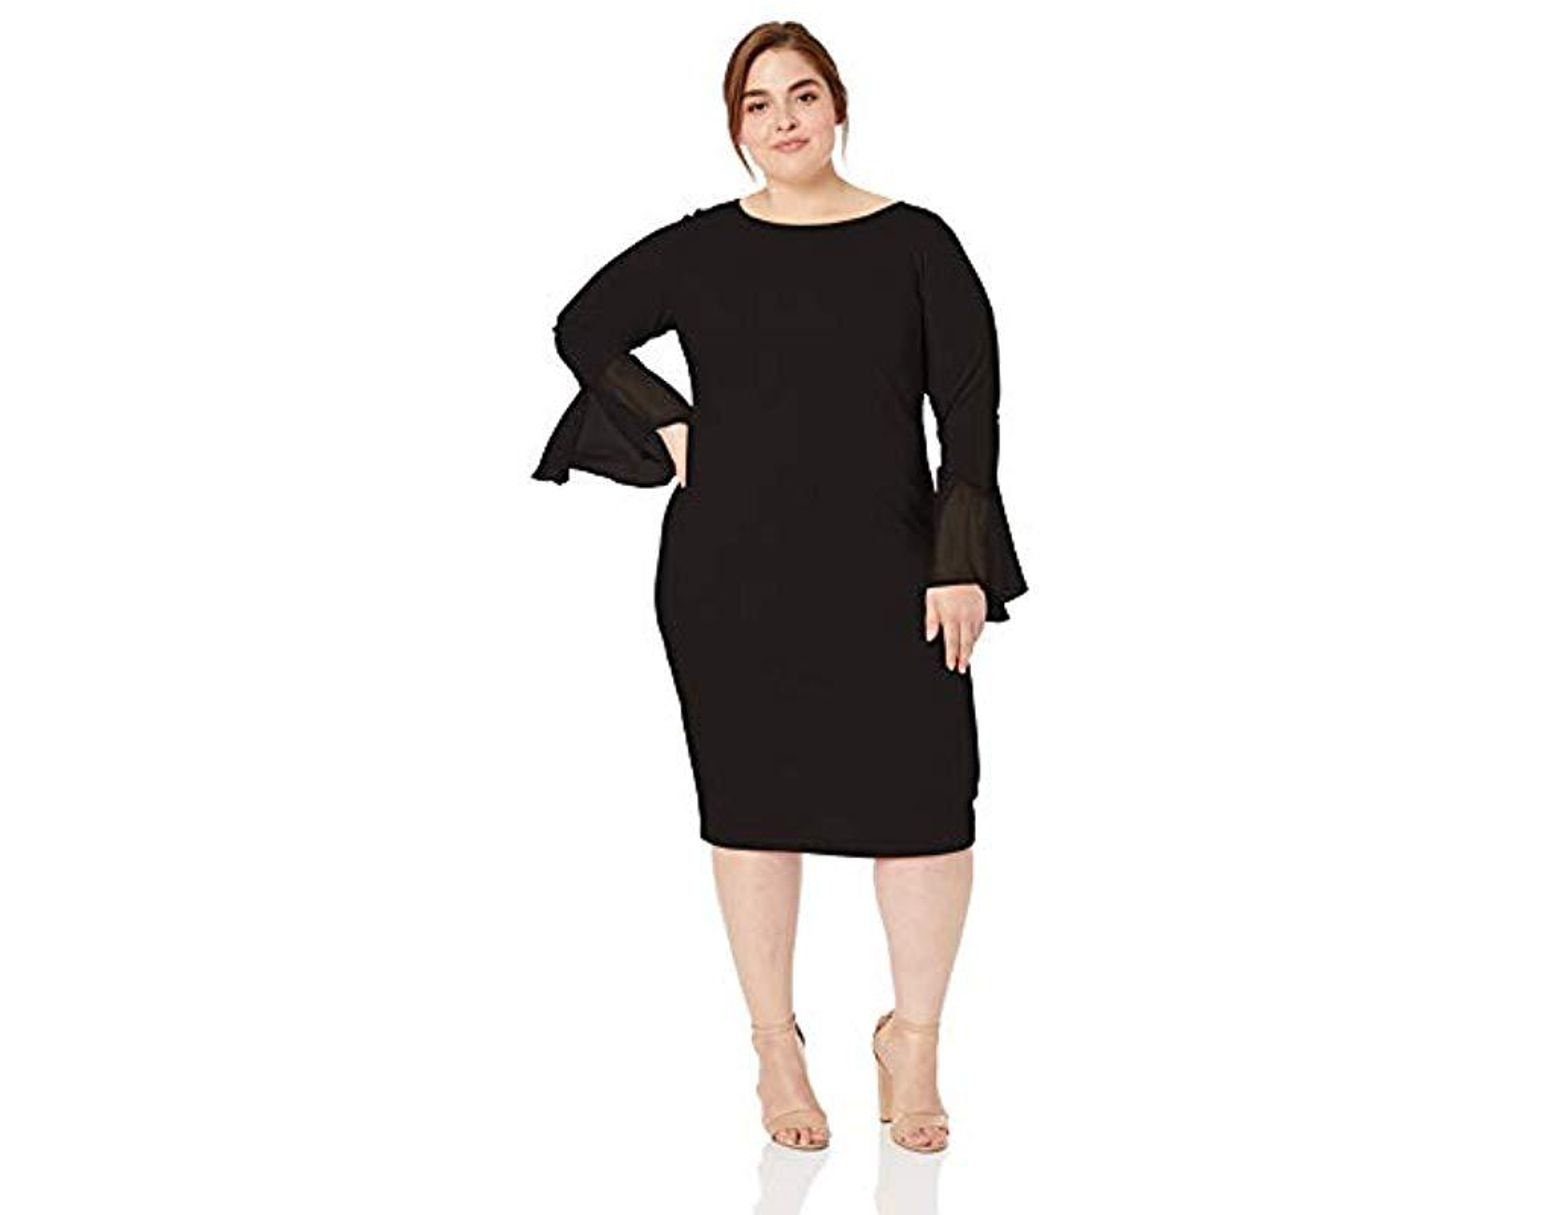 e3dbdc3c Calvin Klein Plus Size Solid Sheath With Chiffon Bell Sleeves Dress in  Black - Lyst